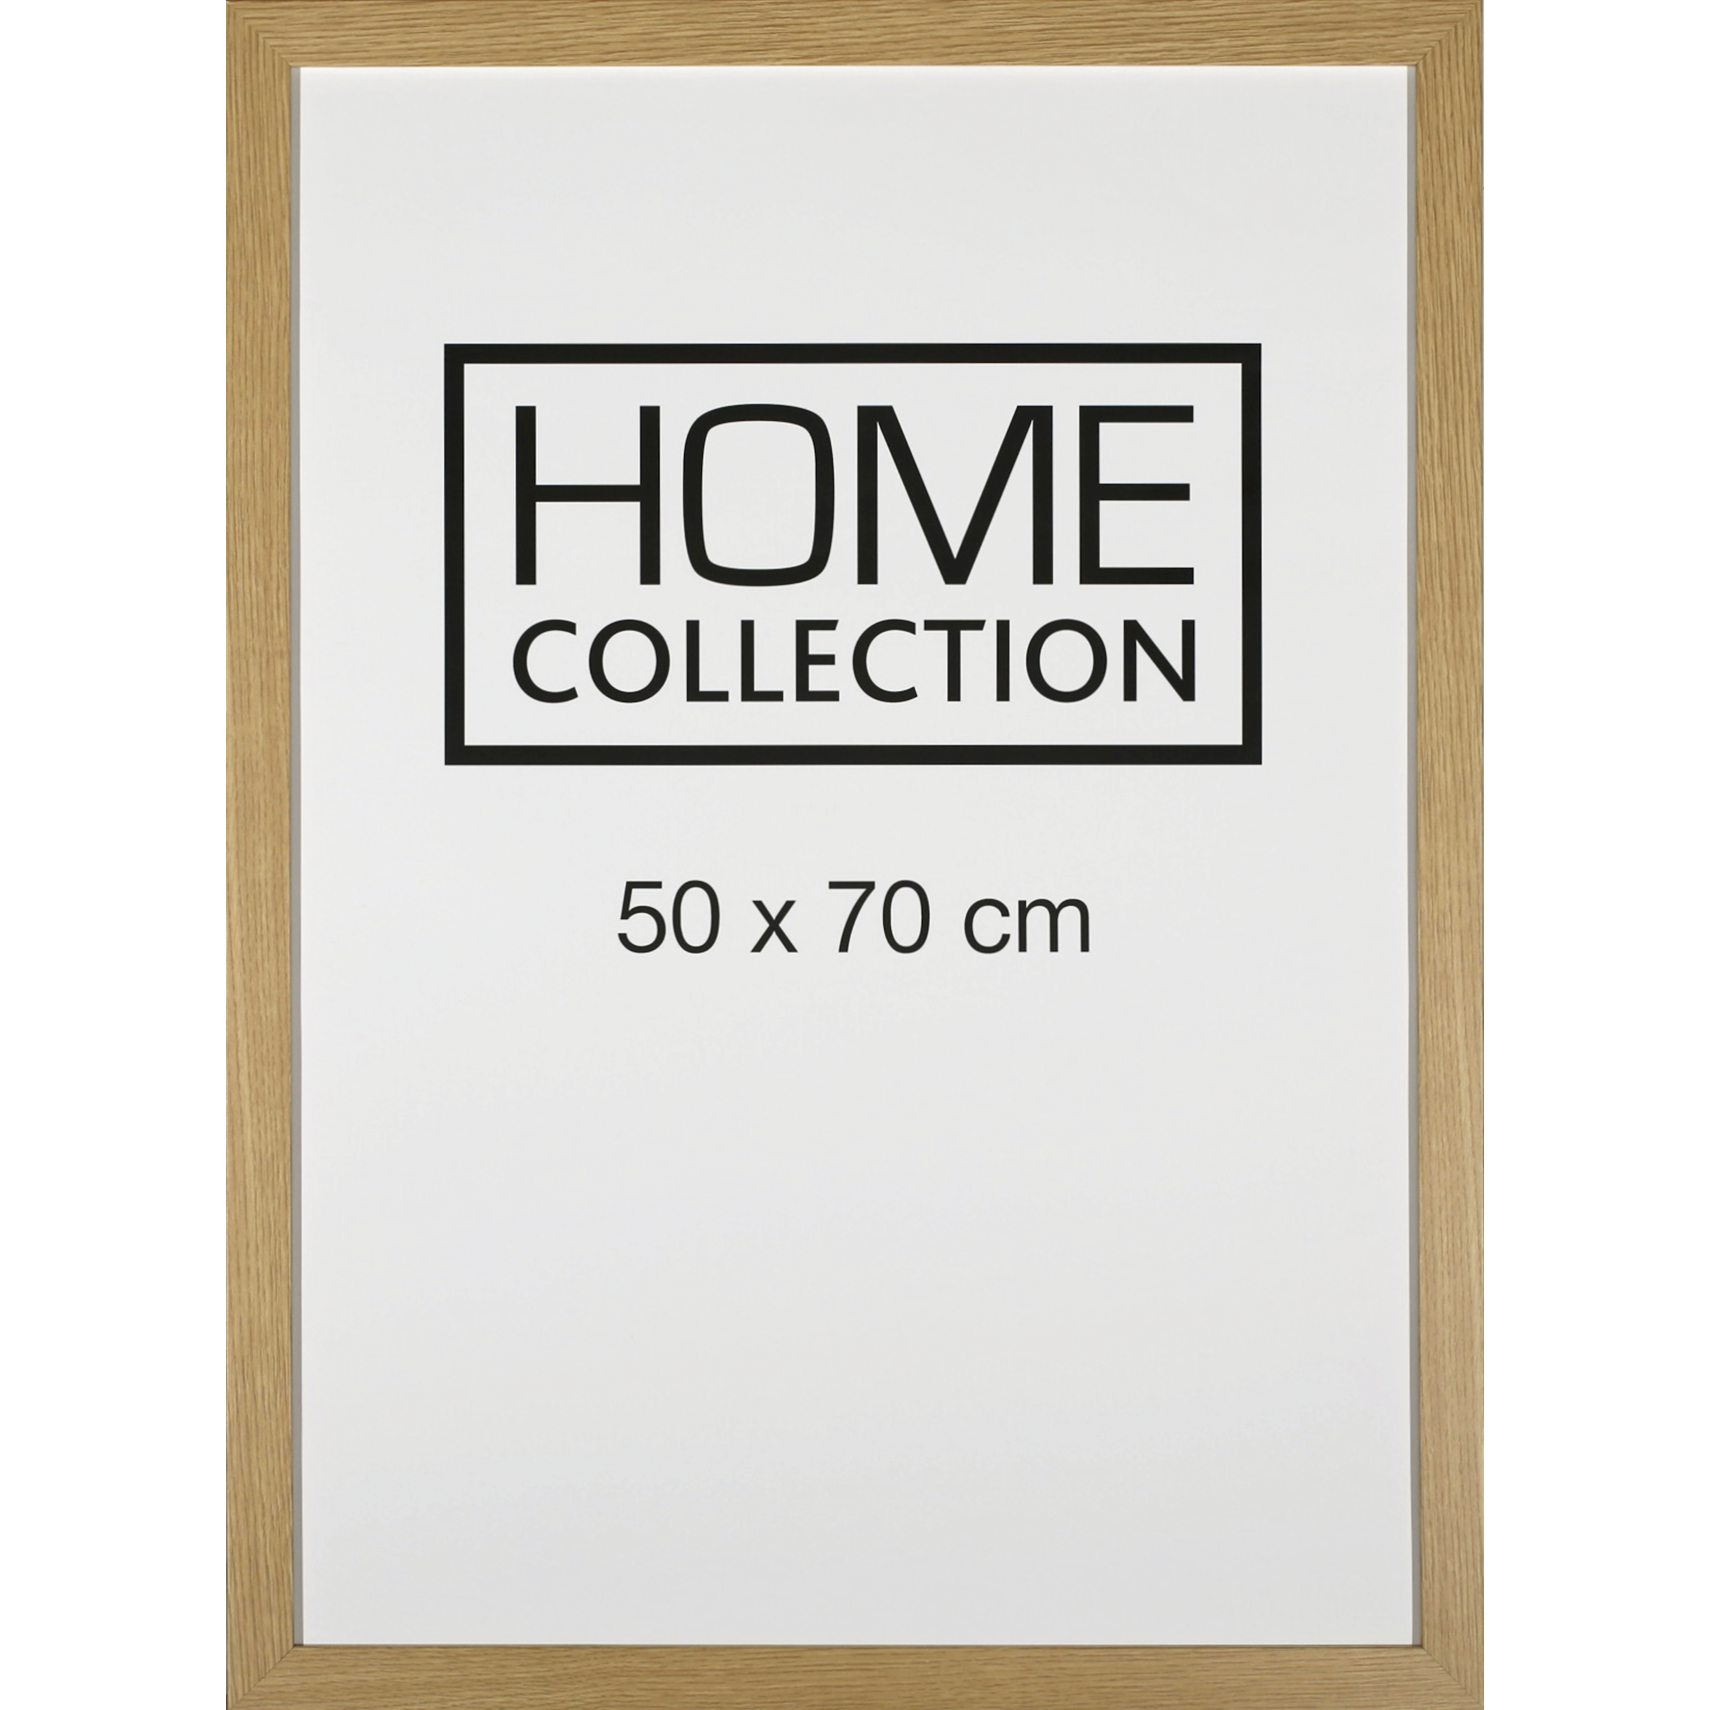 HOME COLLECTION Ram 50 x 70 x 2 cm